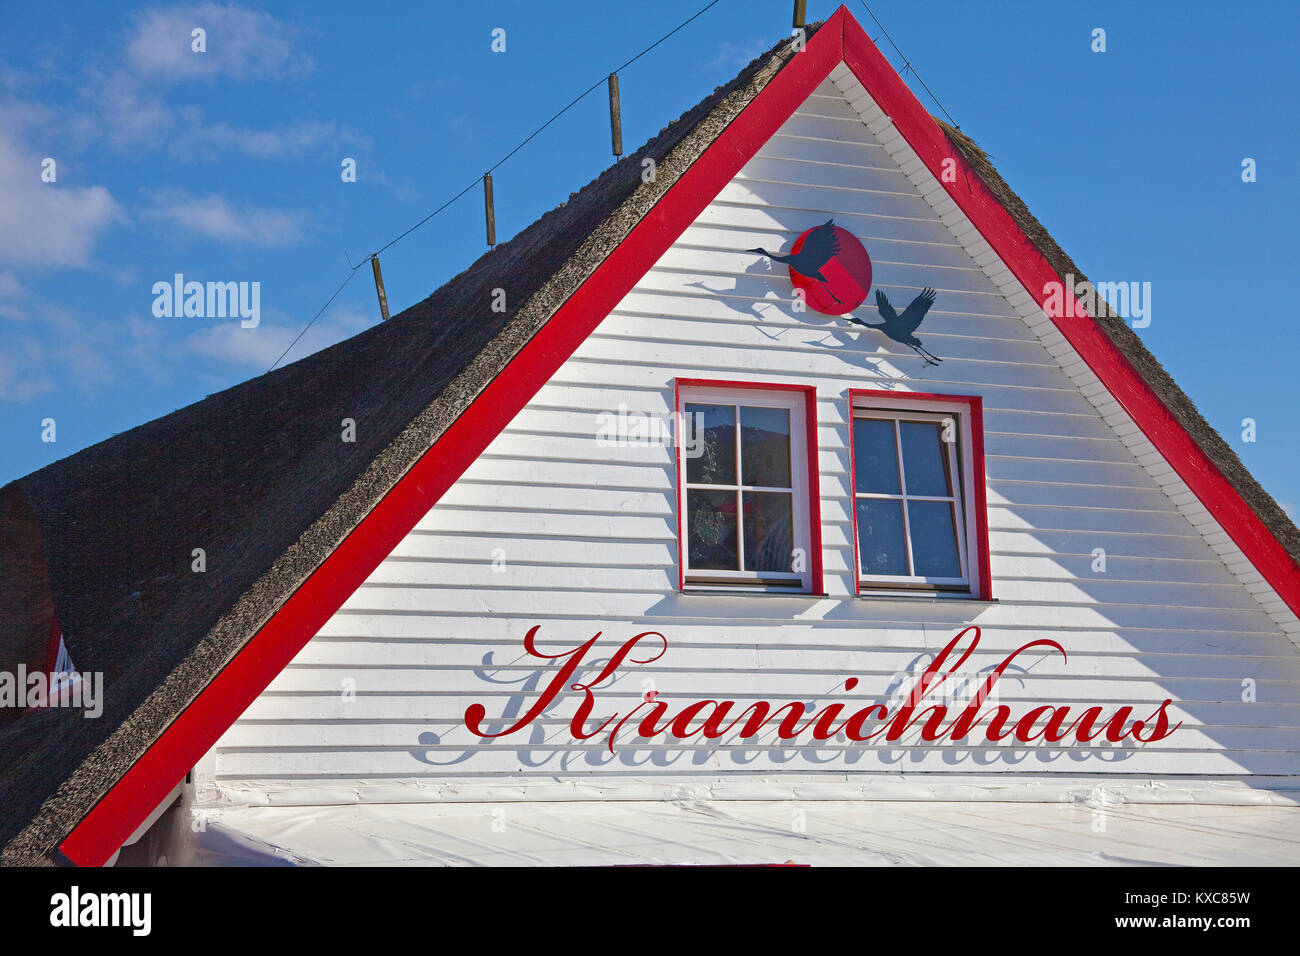 Gable of Crane house at Zingster Strom, thatched-roof house, Zingst, Fishland, Mecklenburg-Western Pomerania, Baltic - Stock Image